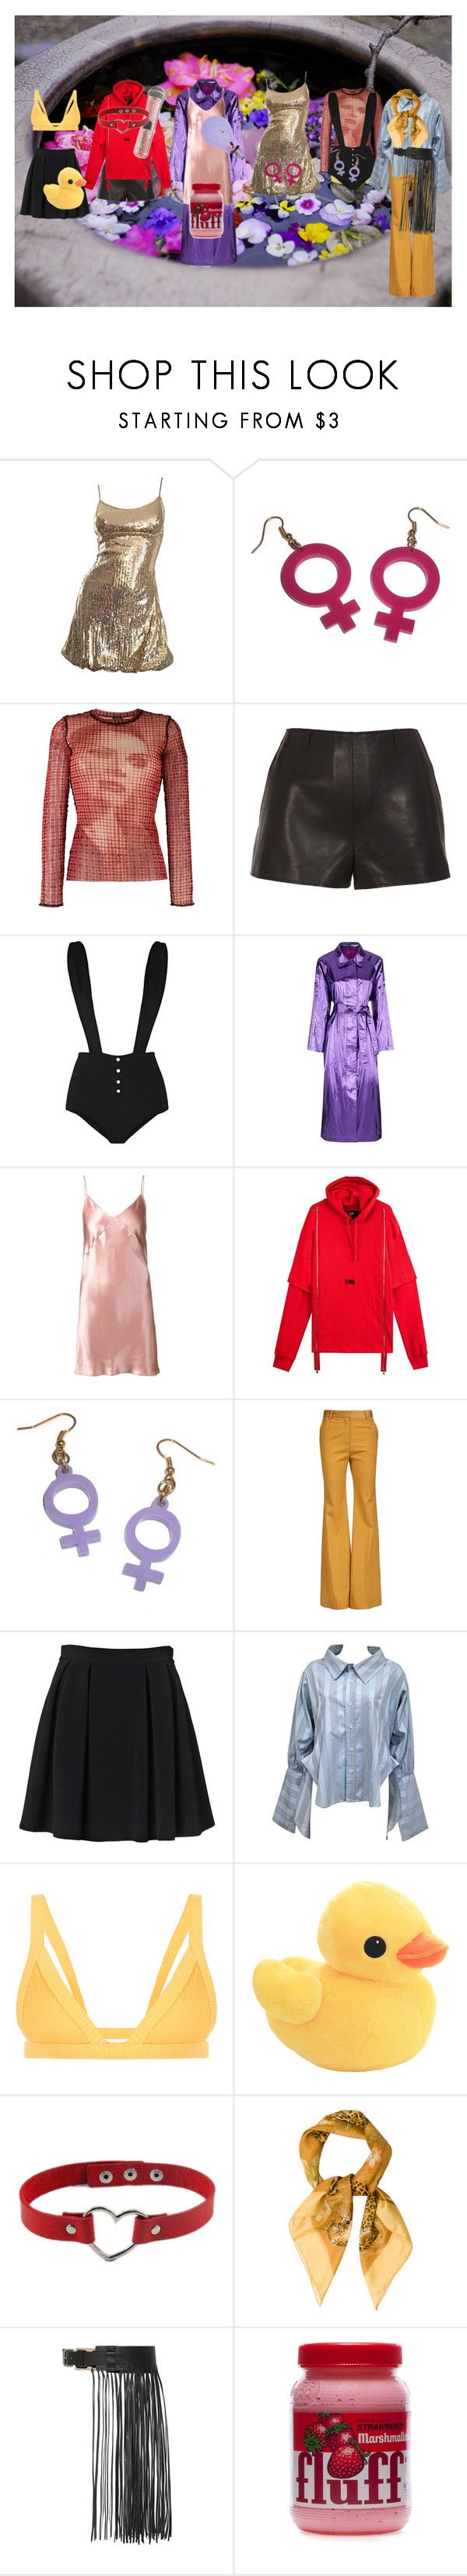 """""""Mao Leigh"""" by aurorazoejadefleurbiancasarah ❤ liked on Polyvore featuring Jean-Paul Gaultier, Fleur du Mal, Malene Oddershede Bach, By Malene Birger, Vivienne Westwood, H.I.P. and Salvatore Ferragamo"""